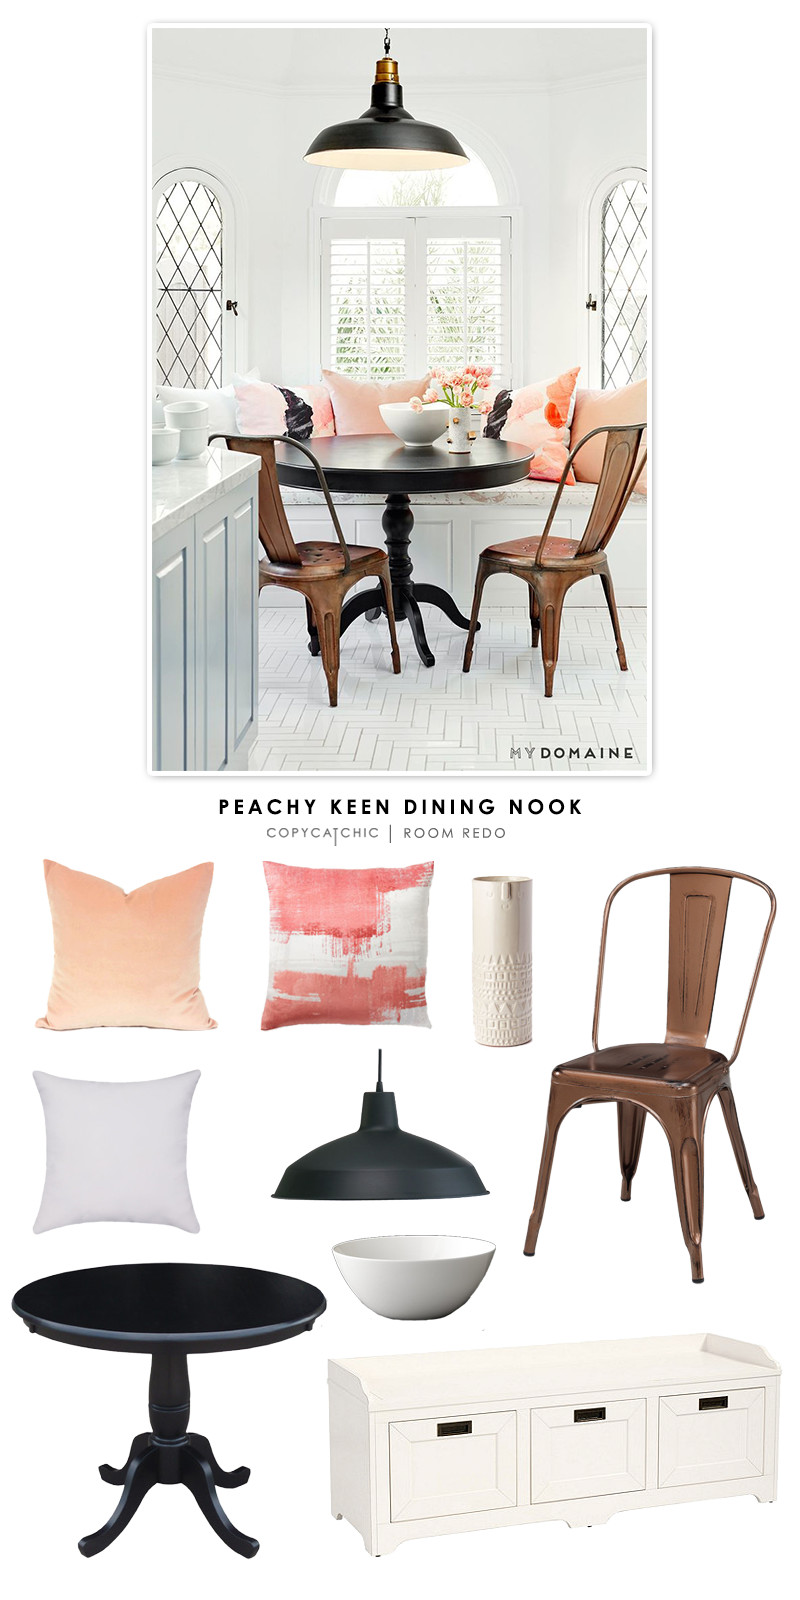 Copy Cat Chic Room Redo Peachy Keen Dining Nook